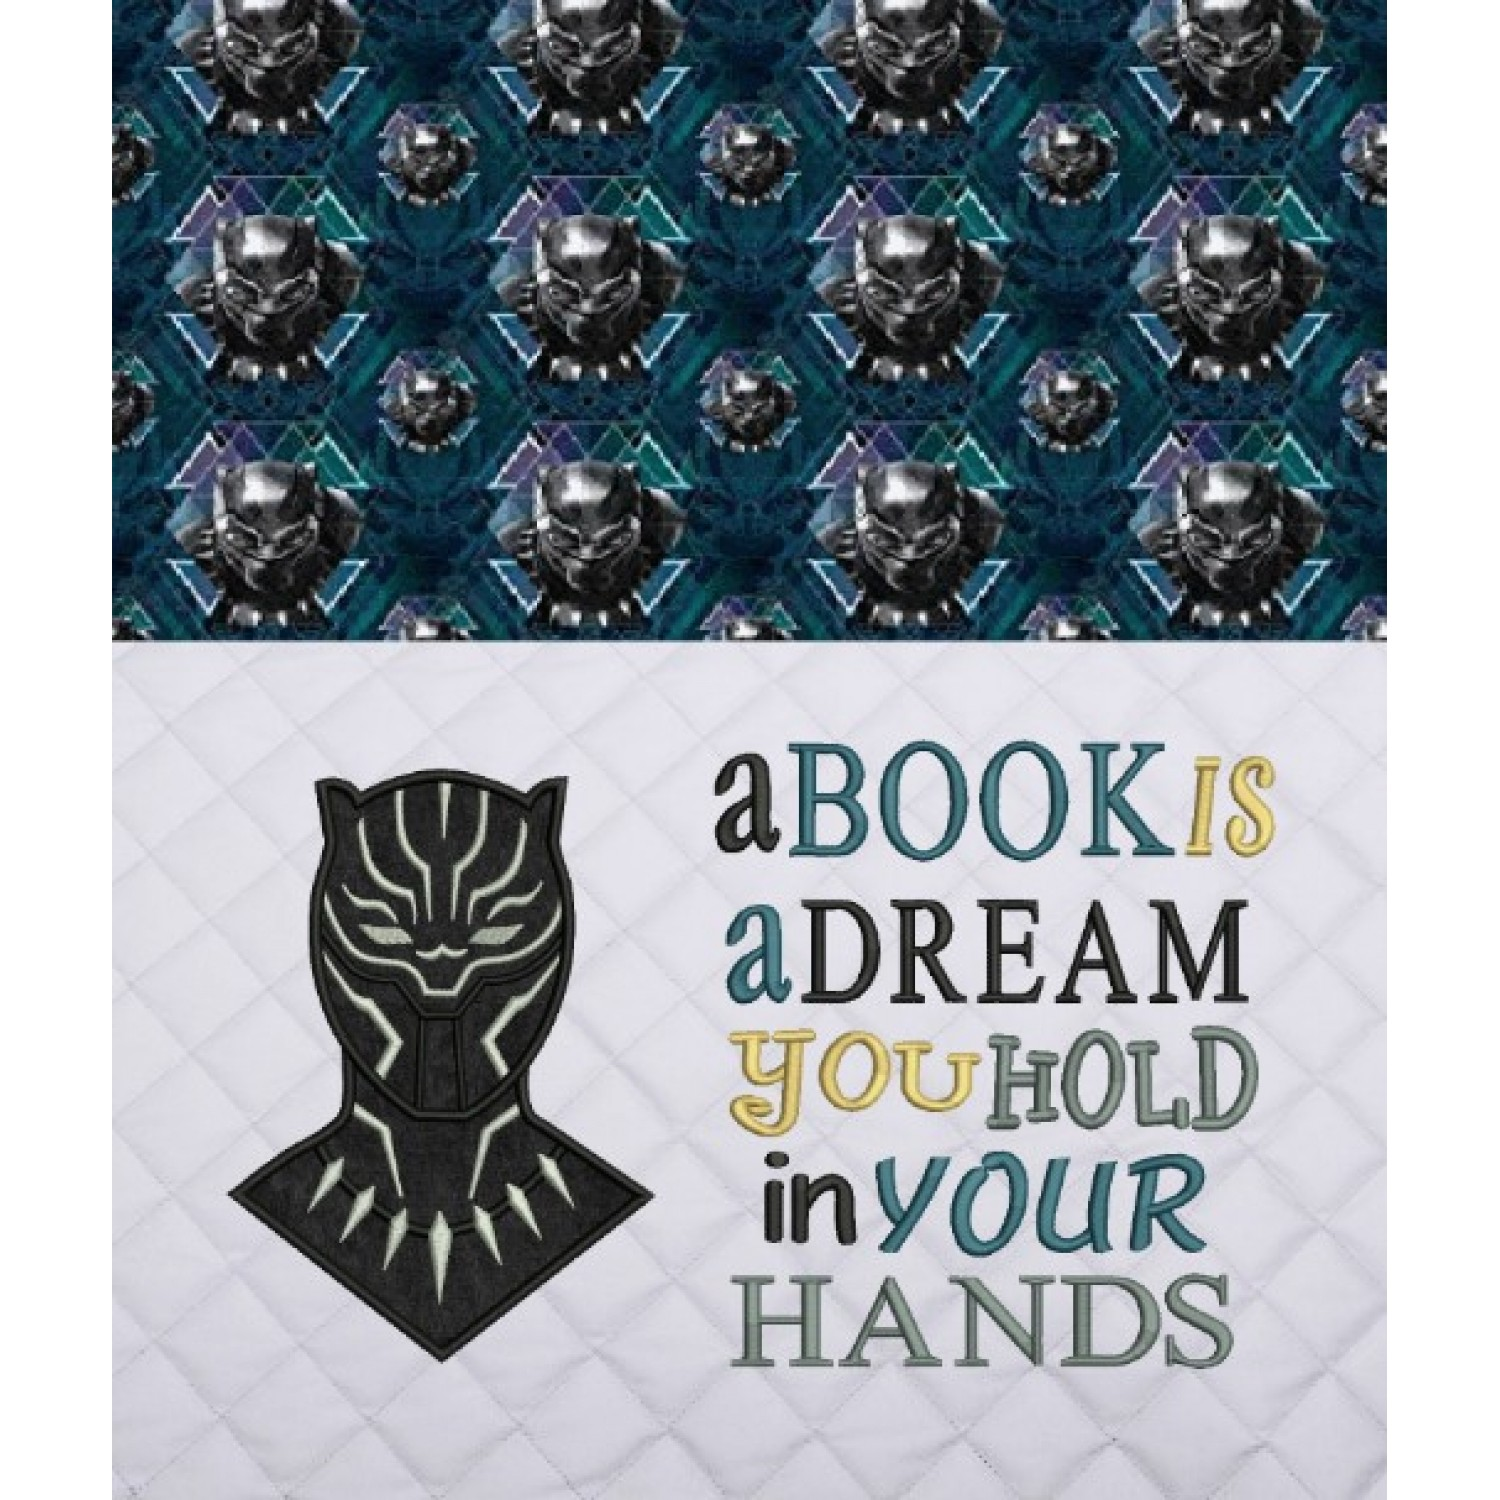 black panther with a book is a dream